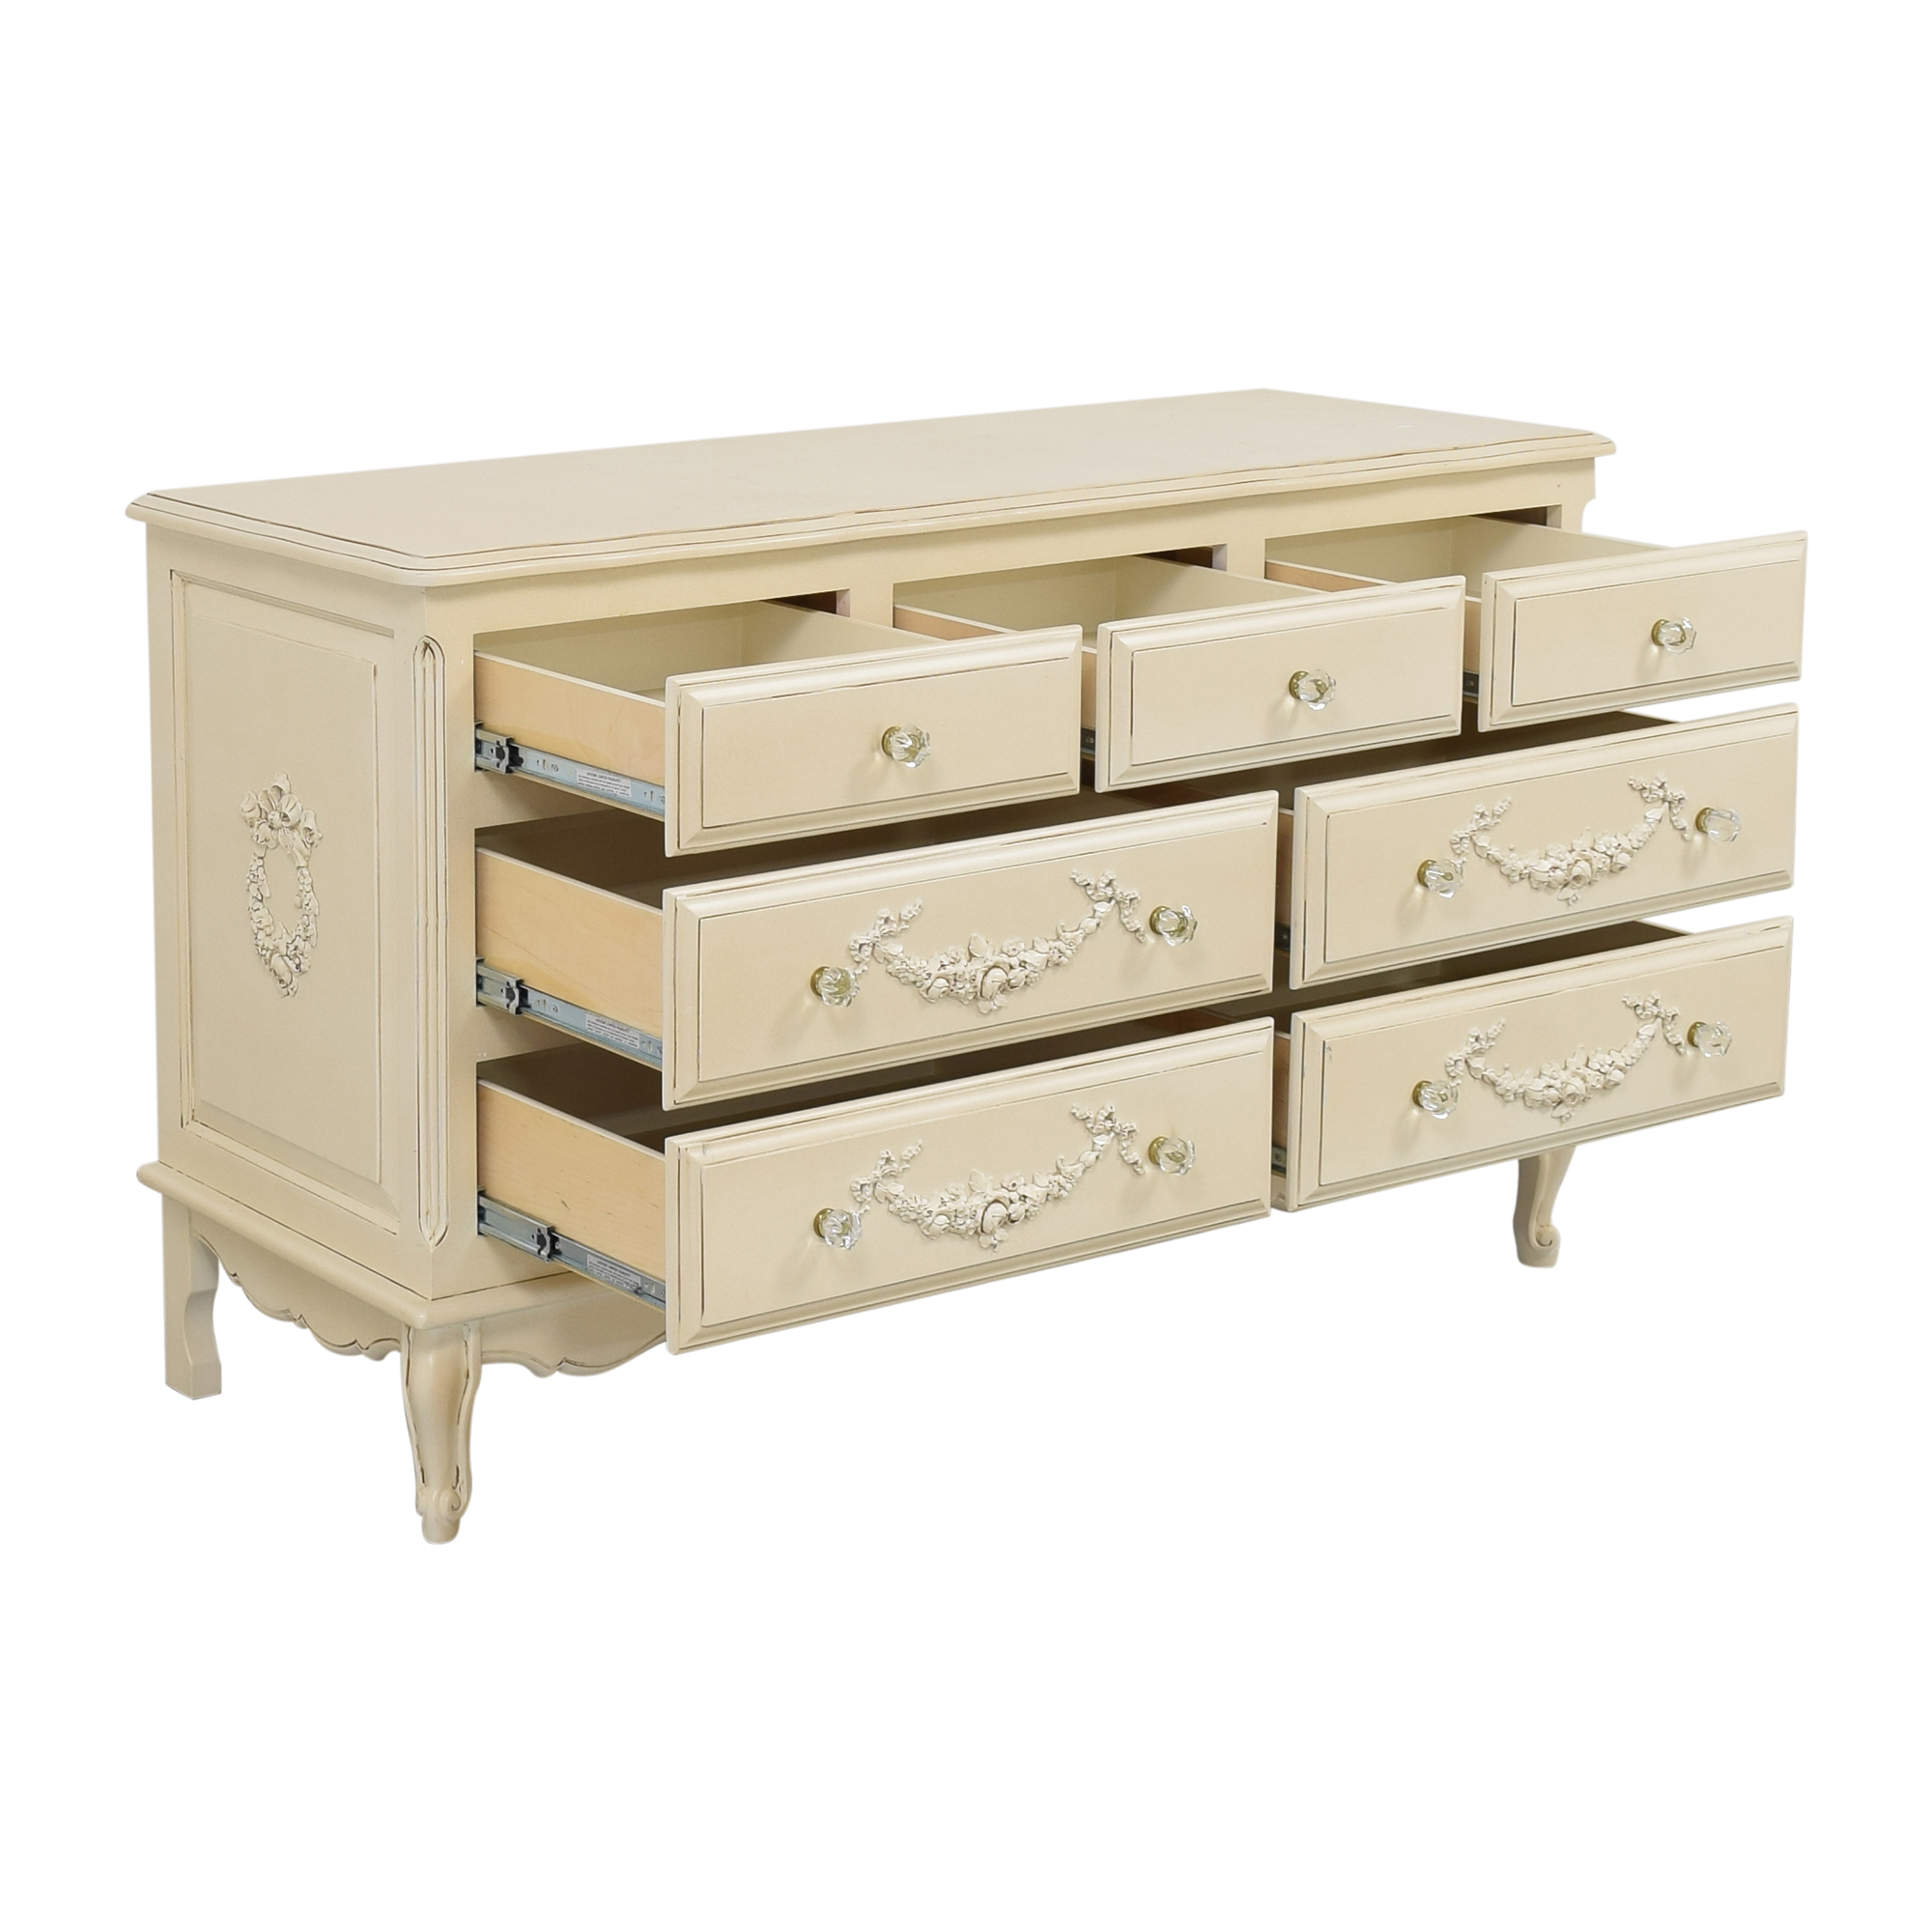 Bograd Kids Bograd Kids Belle Paris 7-Drawer Dresser on sale